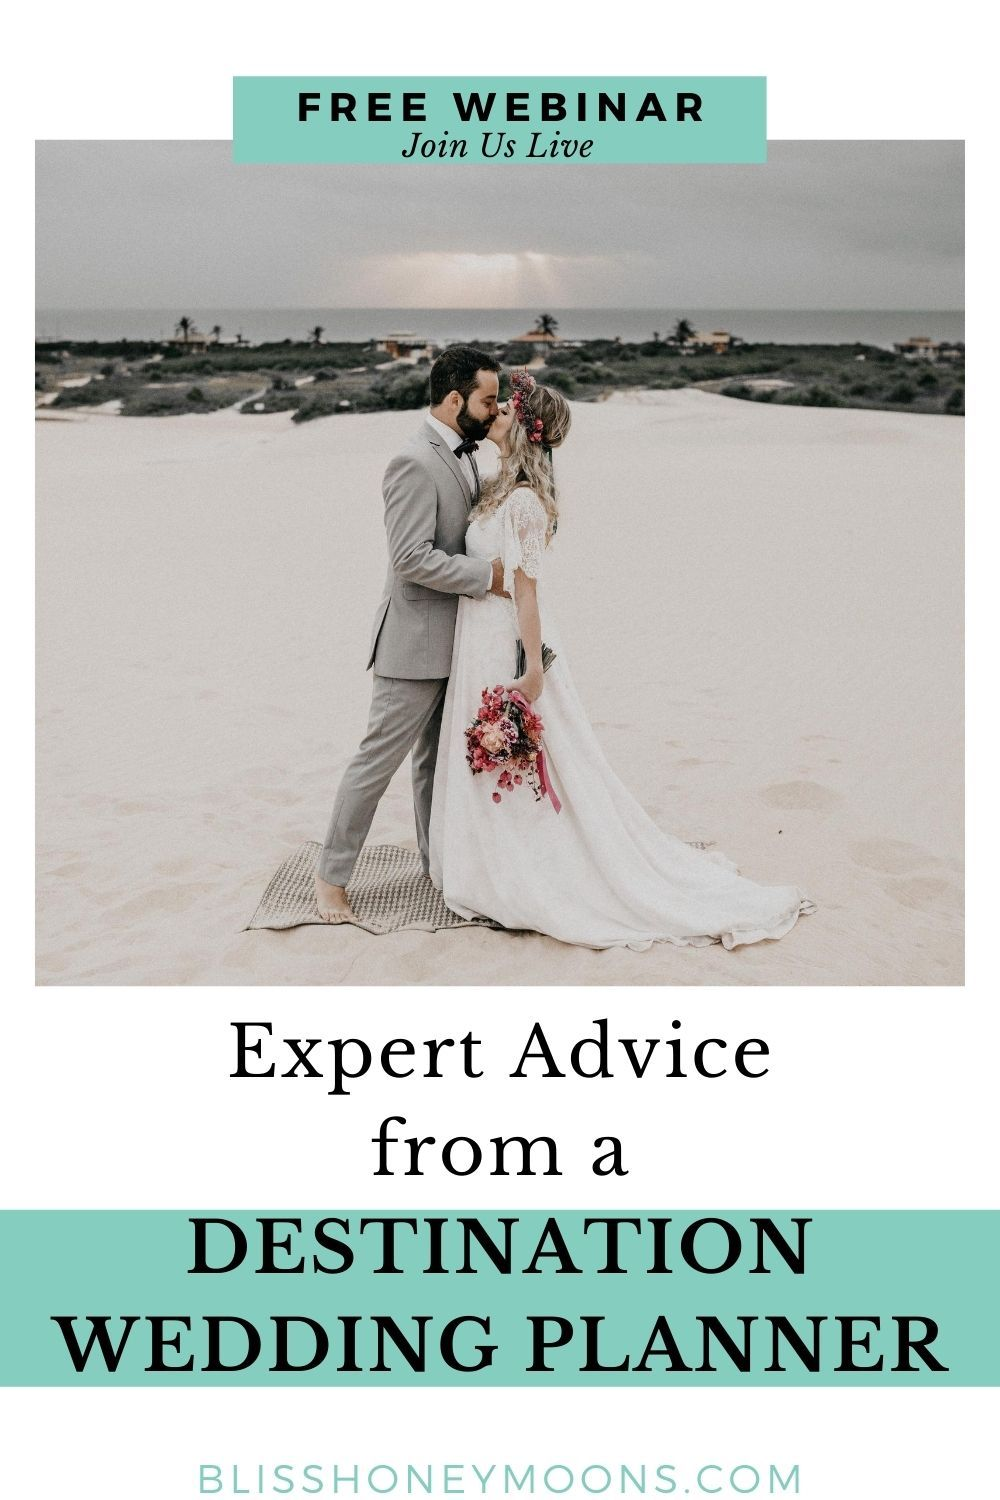 Destination Wedding Planner In 2020 Destination Wedding Destination Wedding Planner Wedding